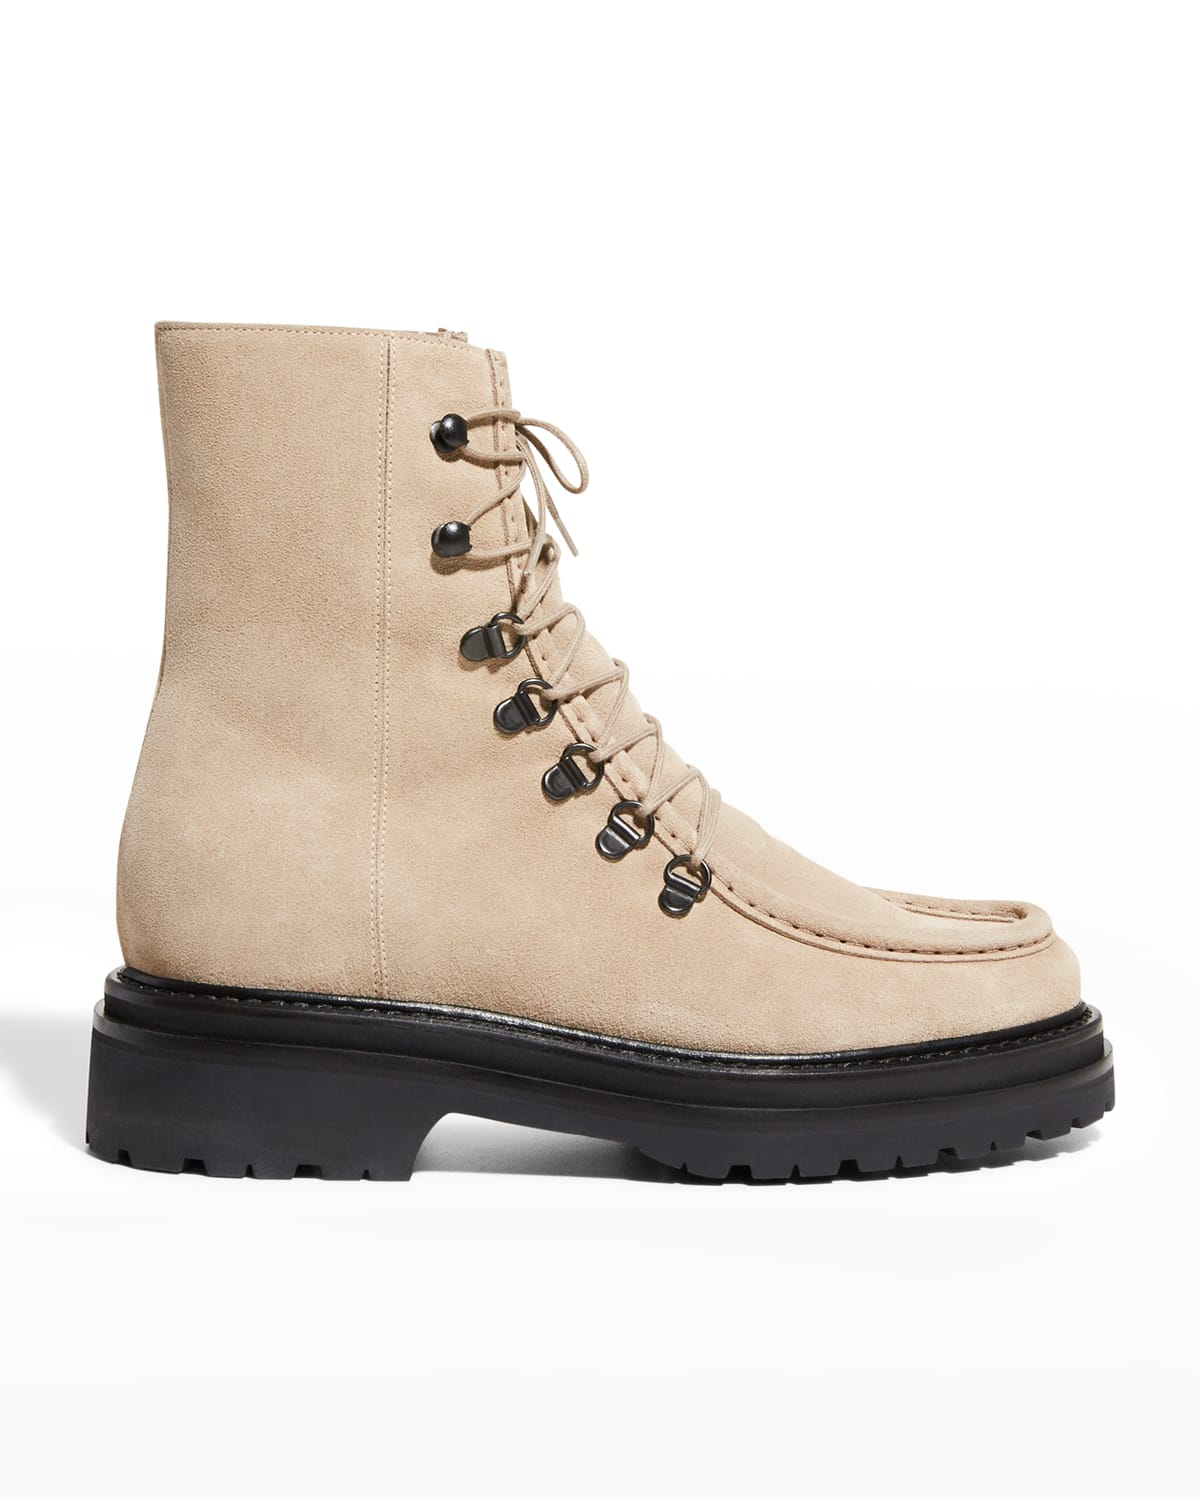 New College Suede Lace-Up Boots